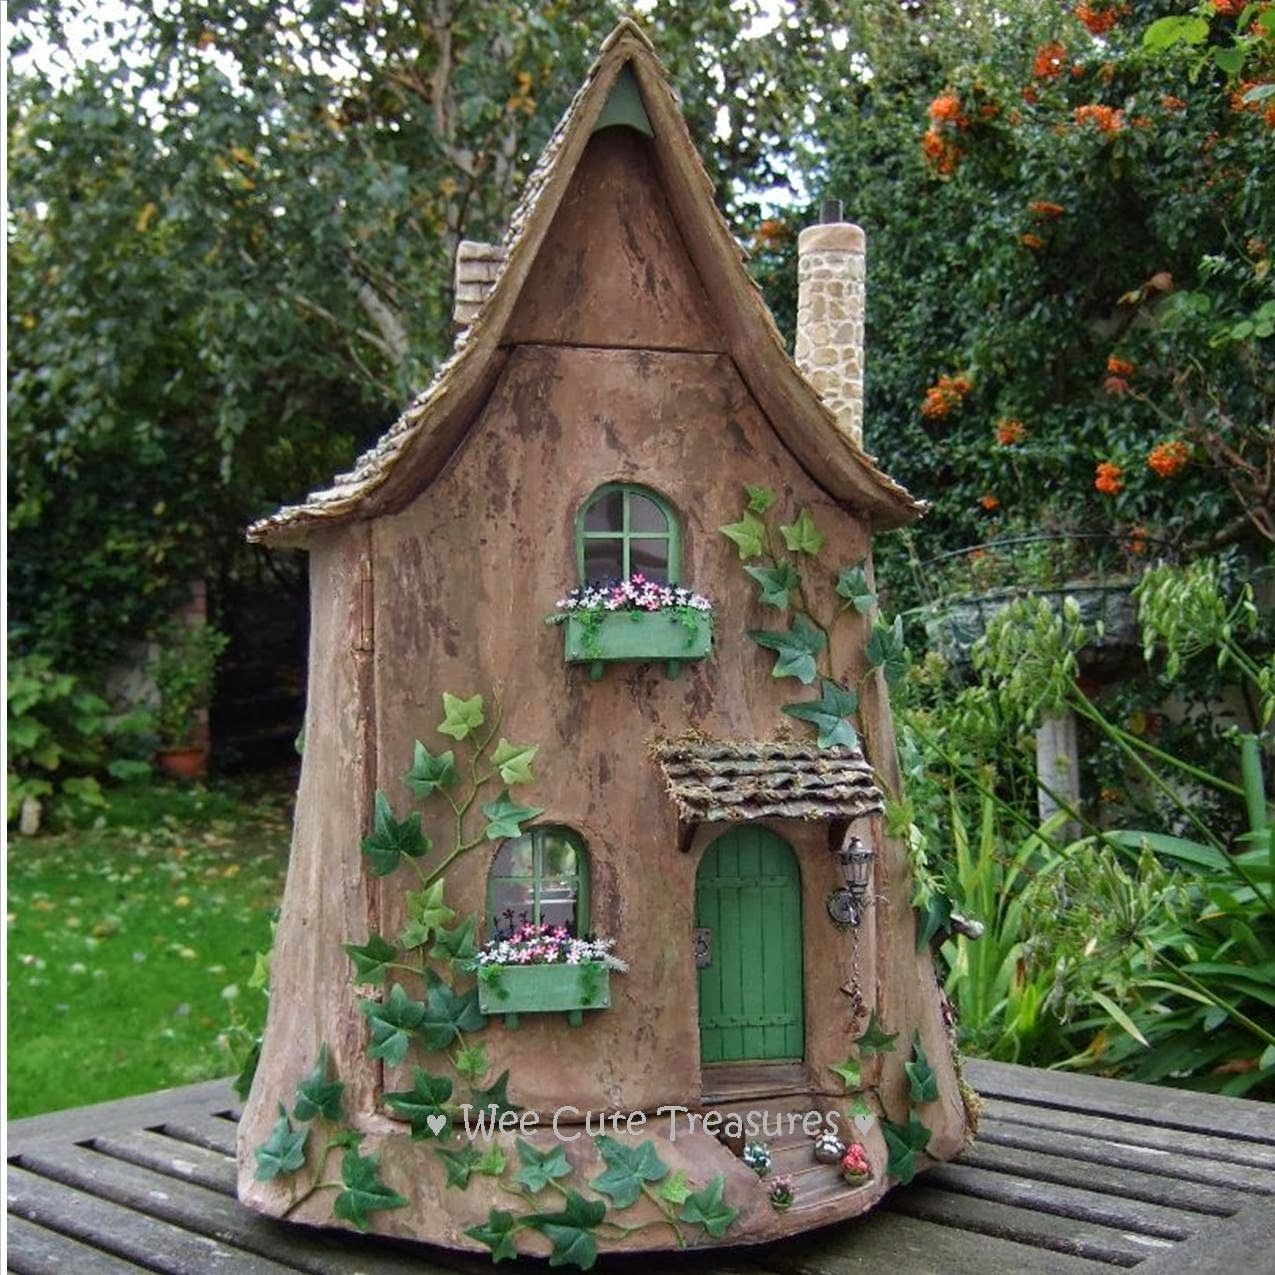 It Is A Fairy Tree Stump House In 1:12 Scale But Fits Into An